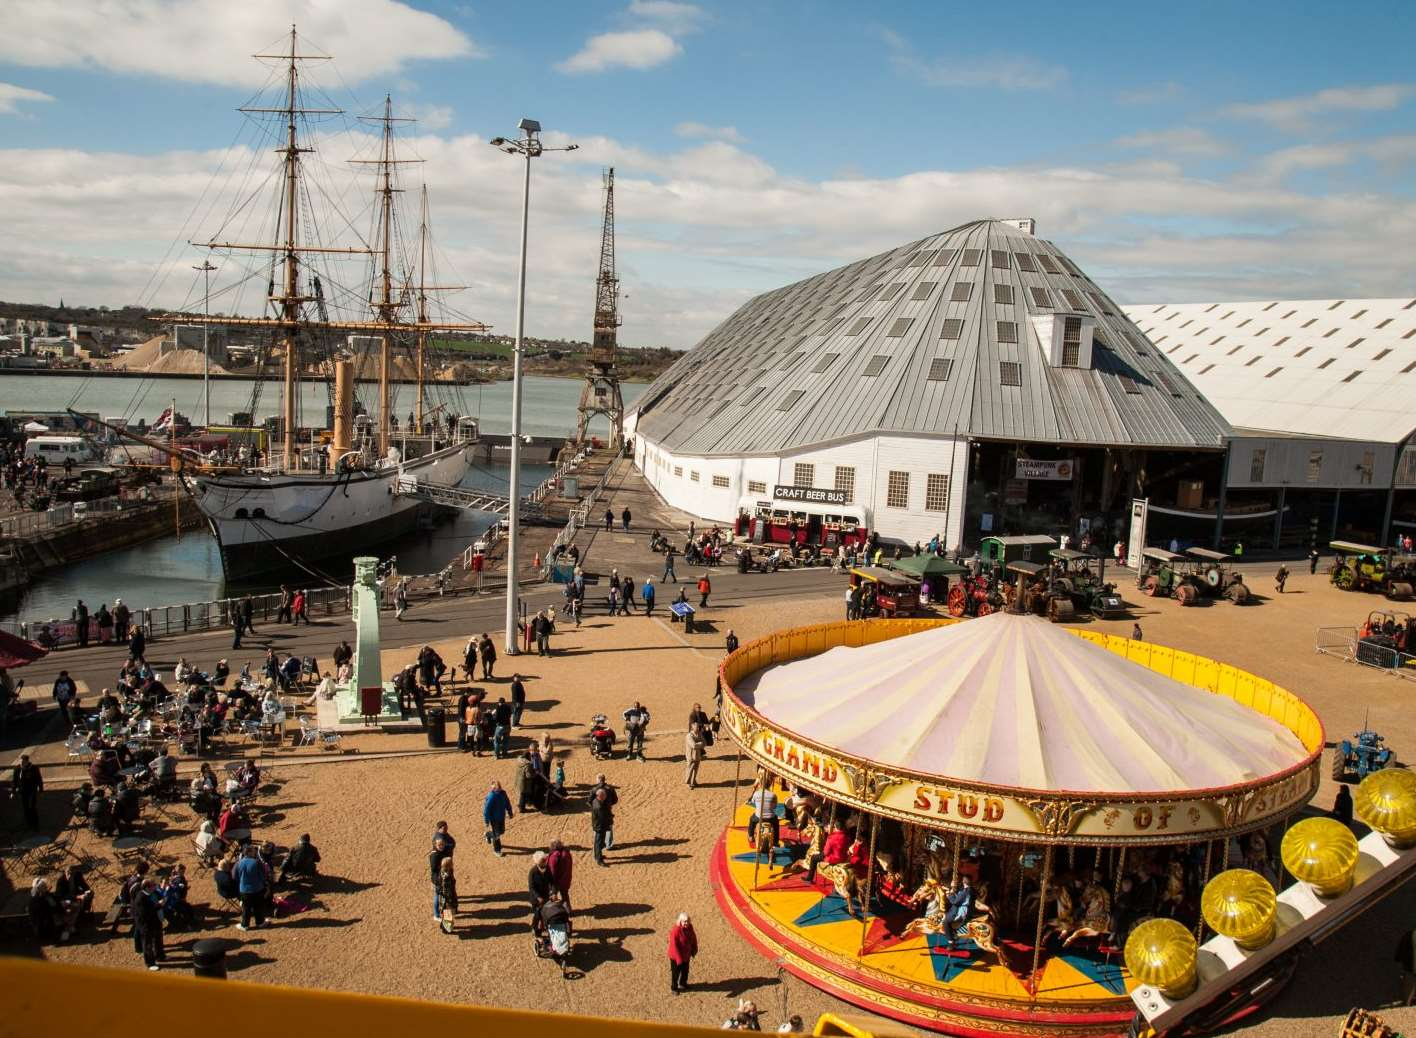 Easter family fun at Historic Dockyard Chatham: Festival ...